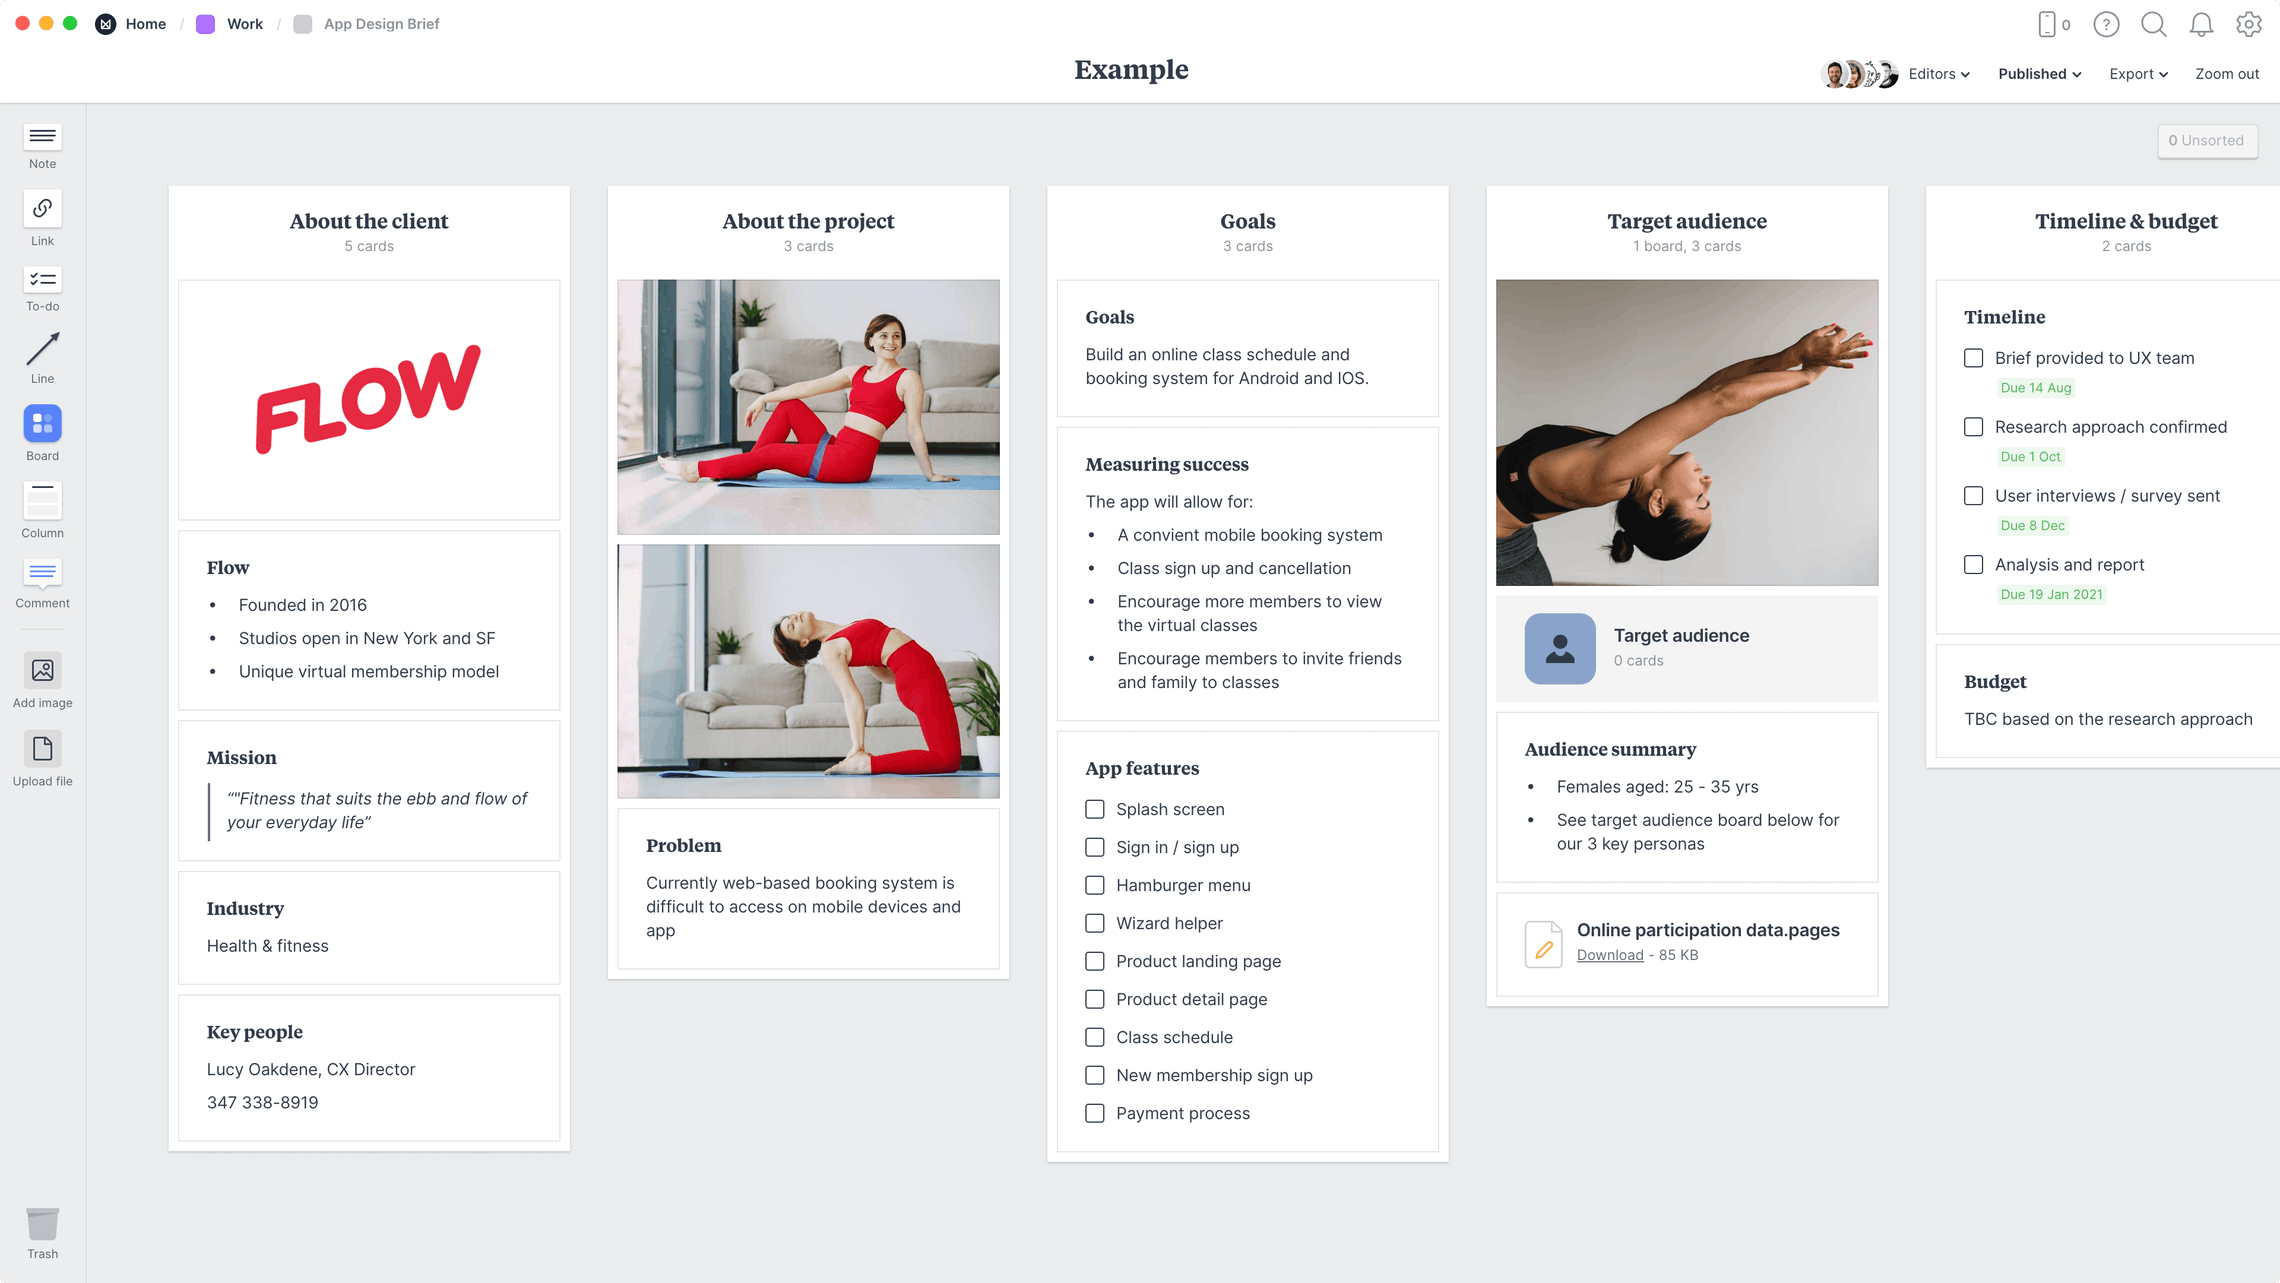 App Design Brief Template, within the Milanote app